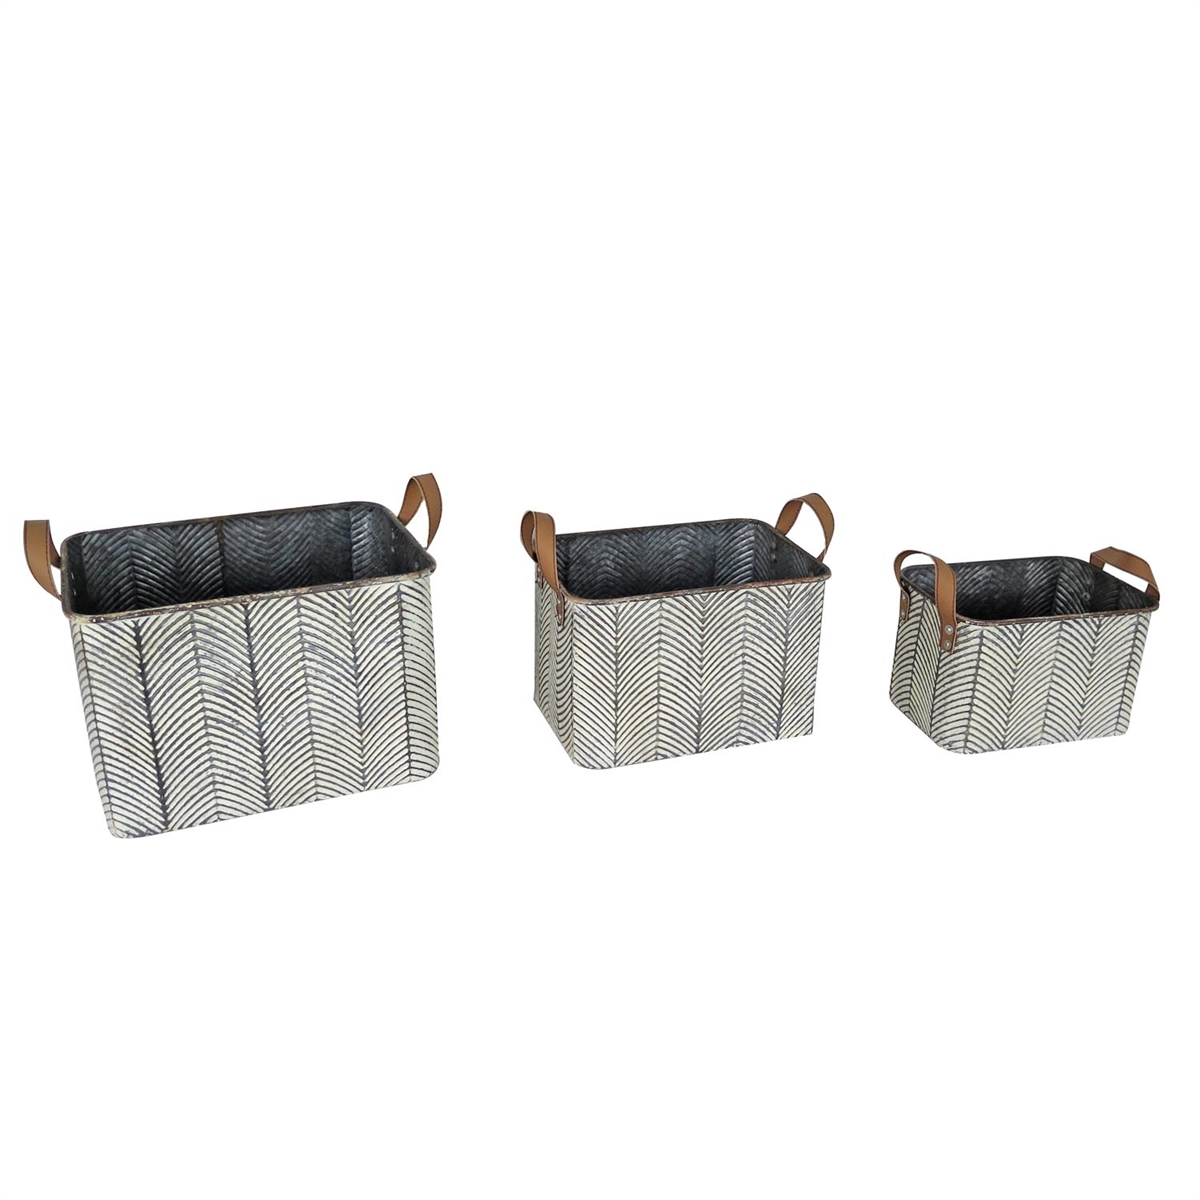 Braxton Baskets, Set of 3 Decorative Baskets | Plum & Post